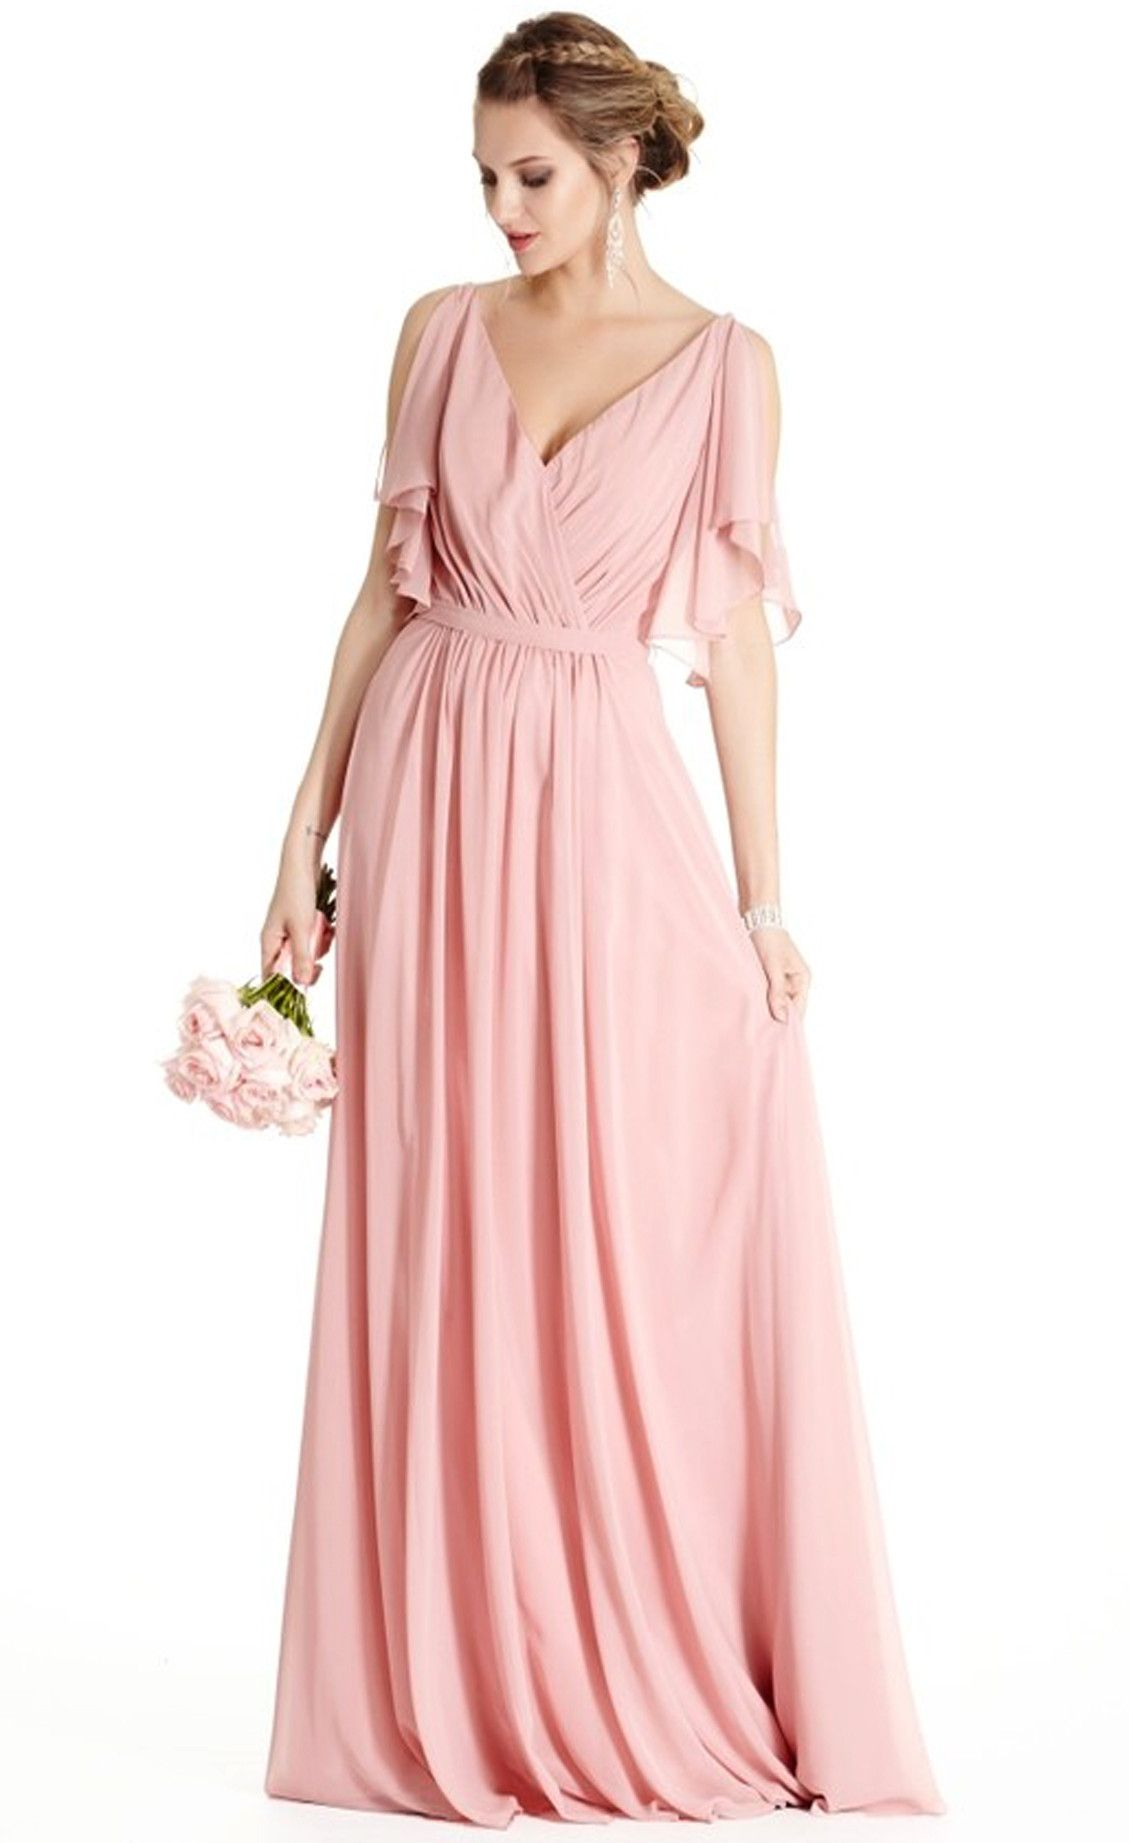 86c0715136 Serendipity Blush Flutter Sleeve Bridesmaids Dress - Find the perfect dress  for any occasion at ShopLuckyDuck.com